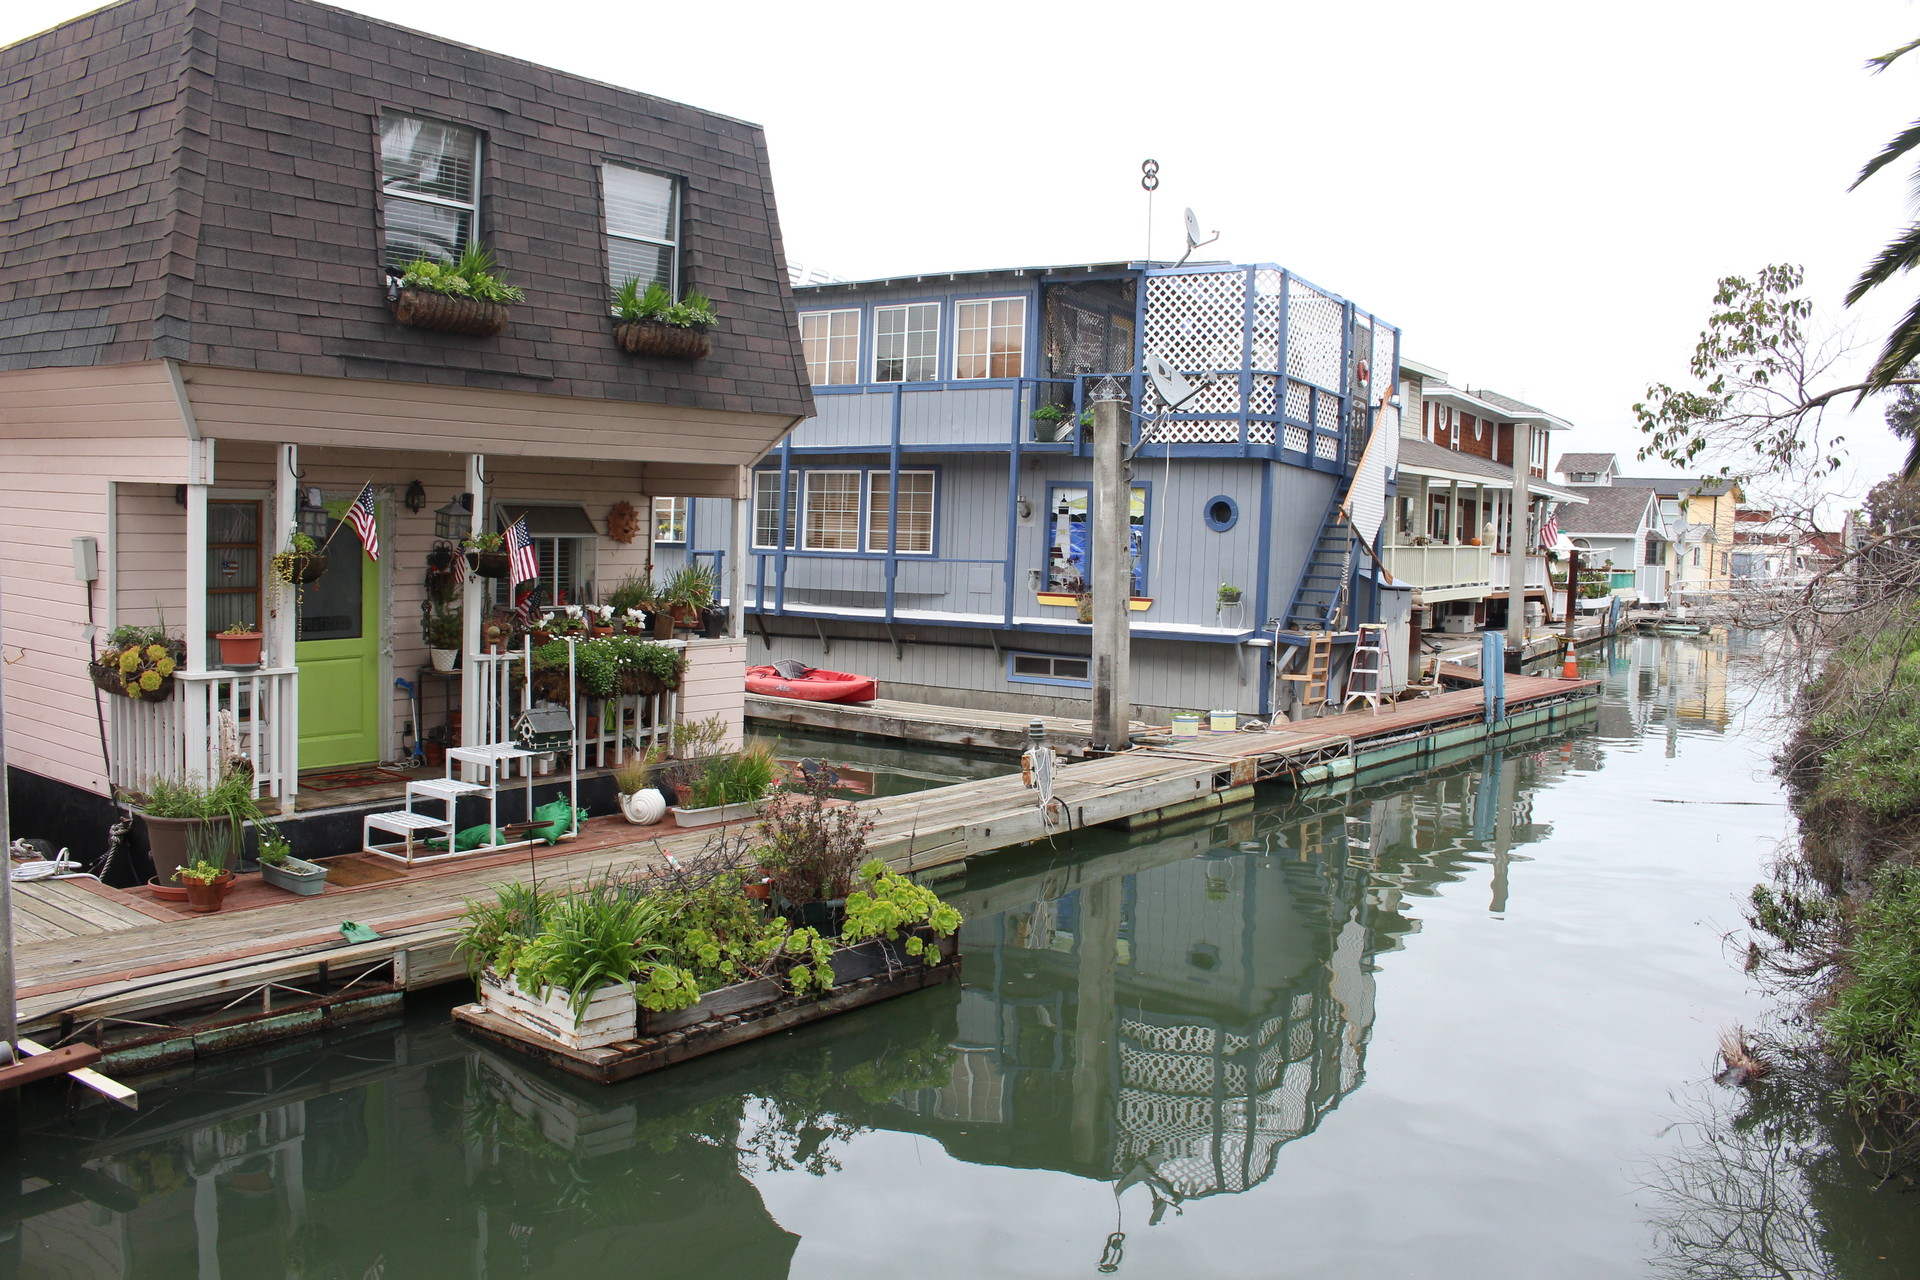 Floating Home Community Vying for Survival in Redwood City | News